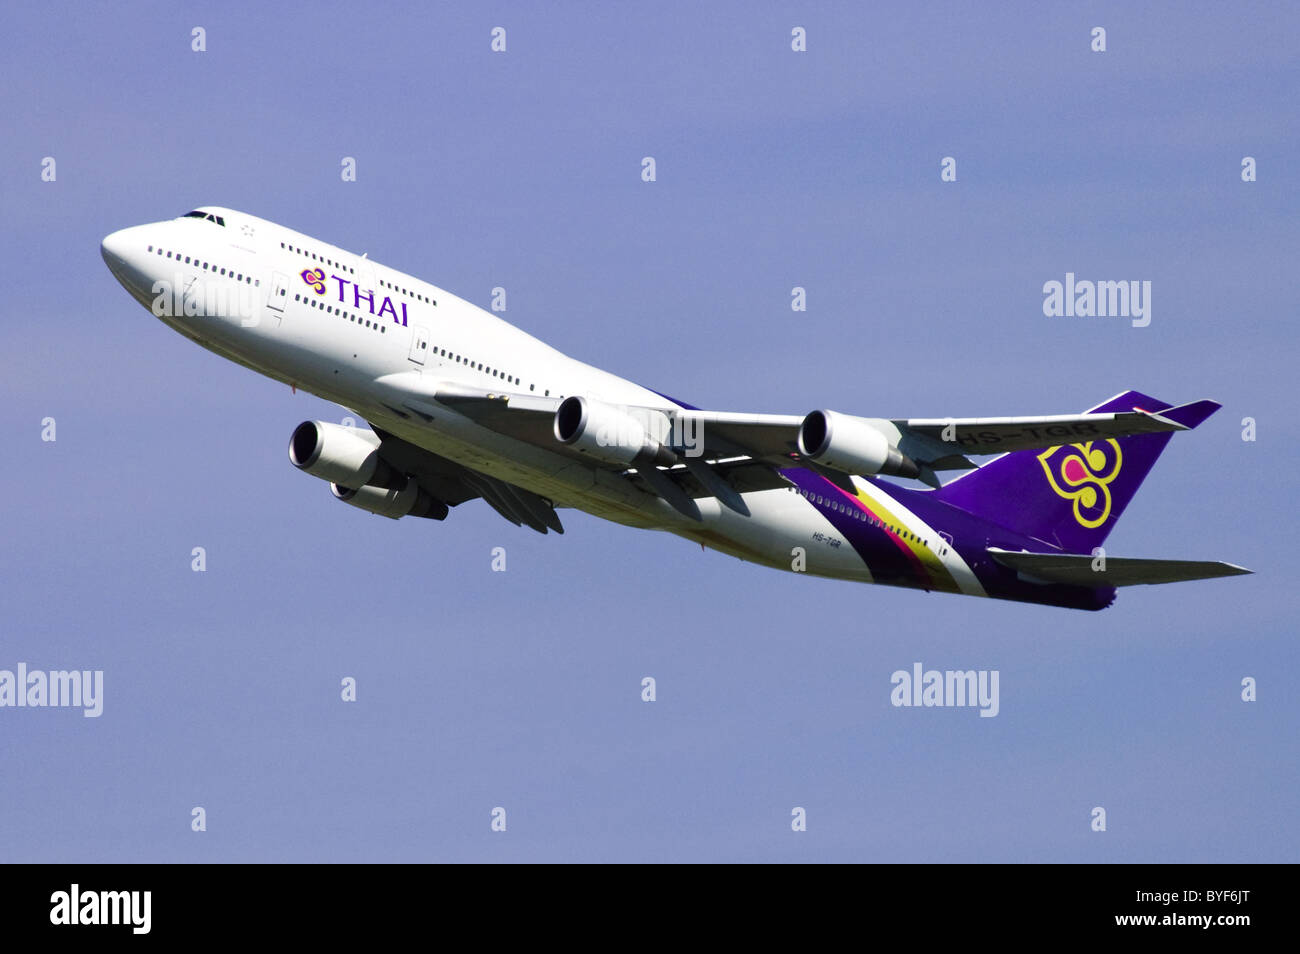 Boeing 747 jumbo jet operated by Thai Airways climbing out after take off from London Heathrow Airport Stock Photo